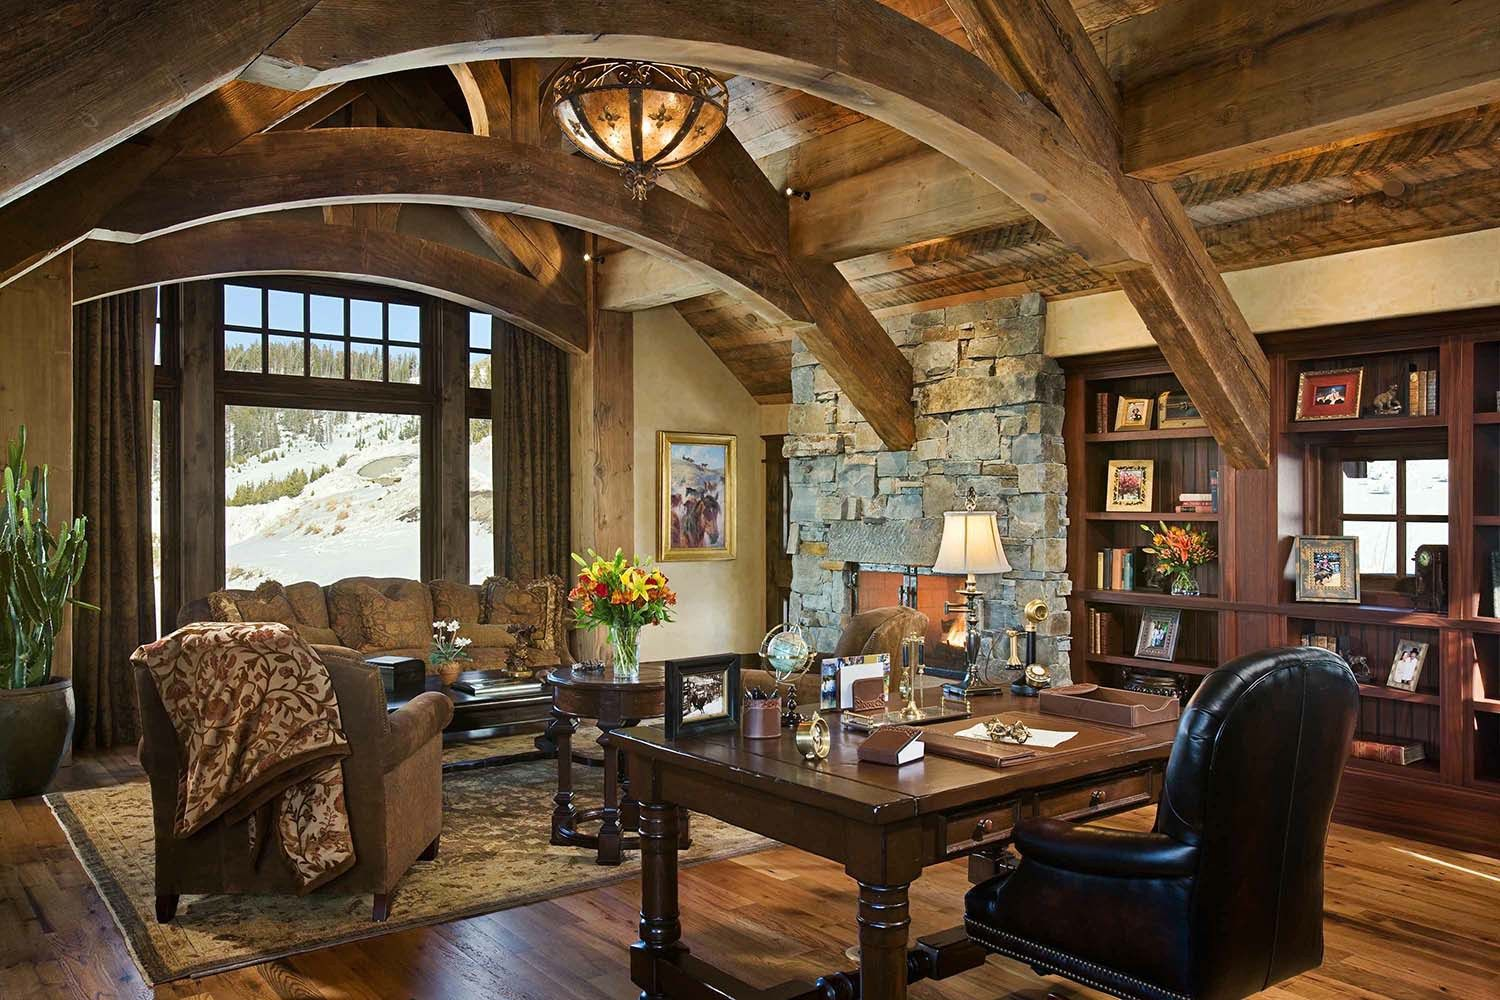 Hillside snowcrest ultimate modern rustic ski chalet for Masculine rustic decor